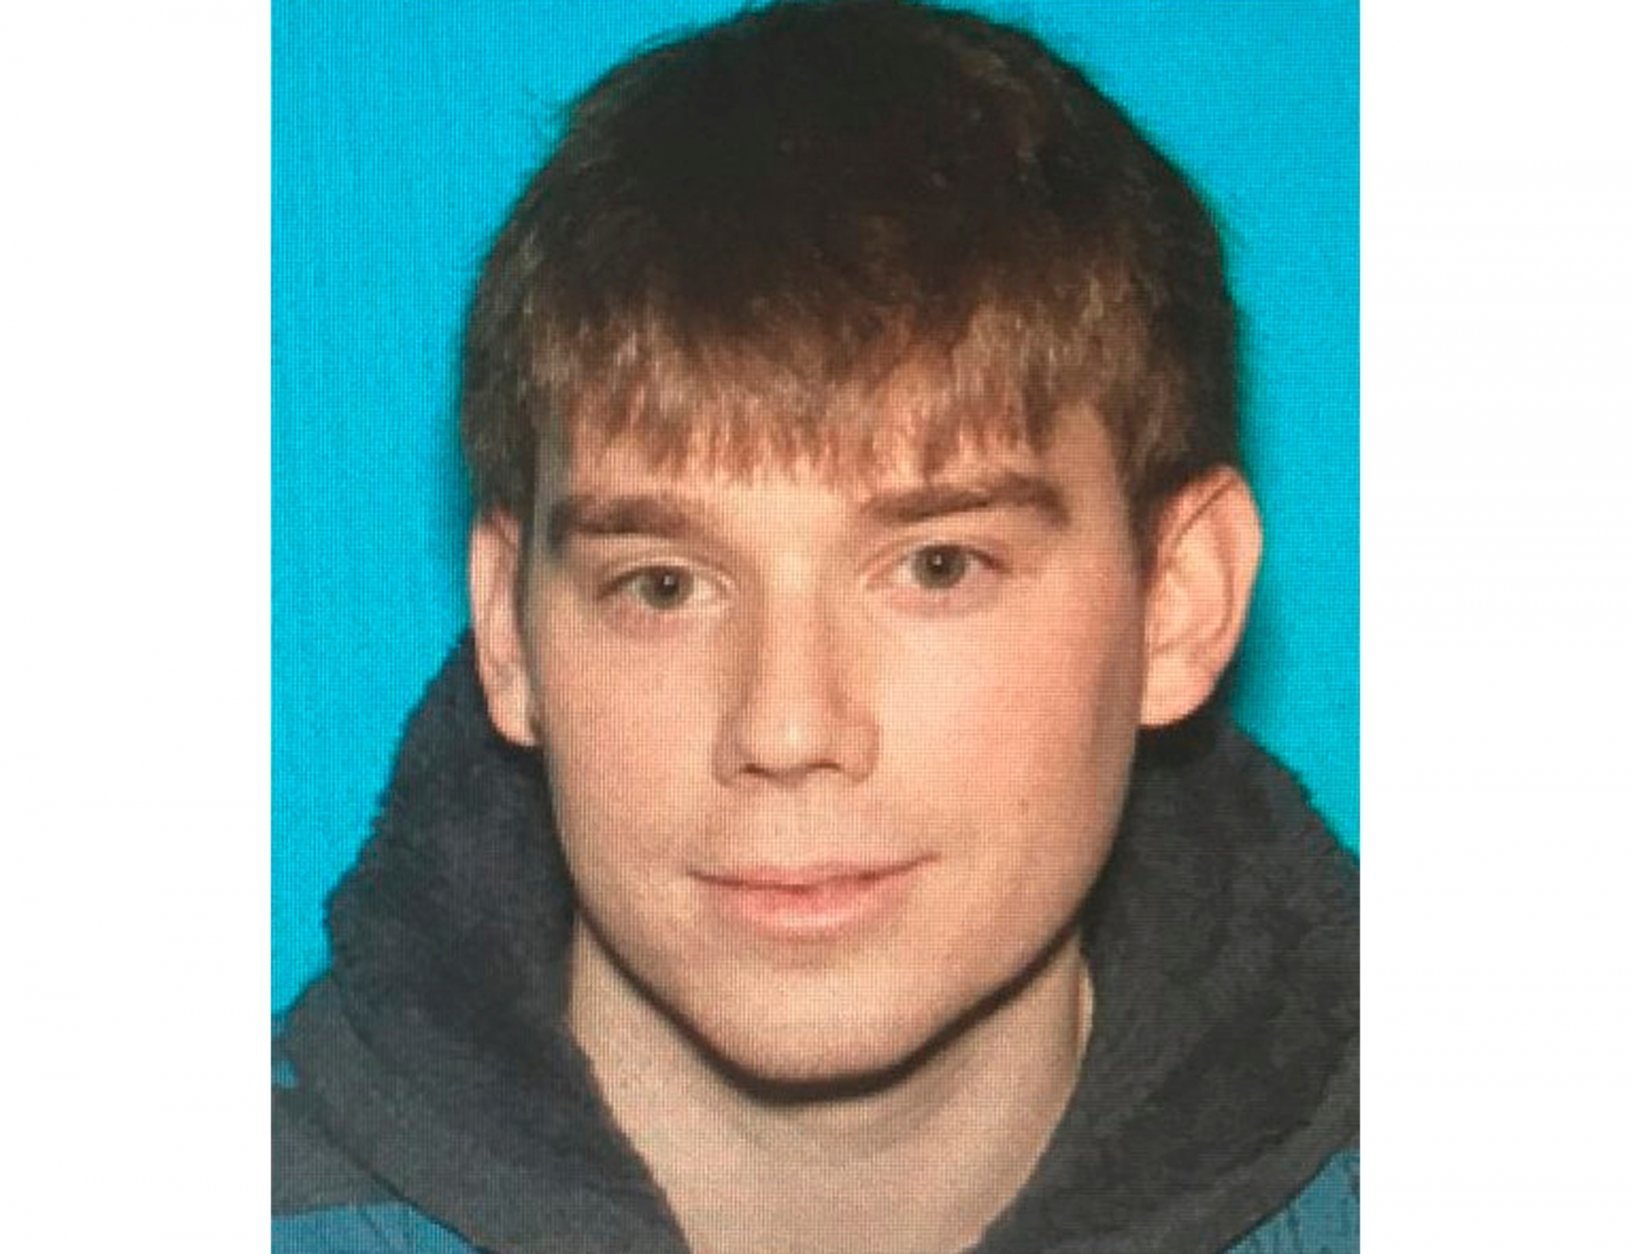 This photo provided by Metro Nashville Police Department shows Travis Reinking, who police are searching for in connection with a fatal shooting at a Waffle House restaurant in the Antioch neighborhood of Nashville early Sunday, April 22, 2018. (Metro Nashville Police Department via AP)